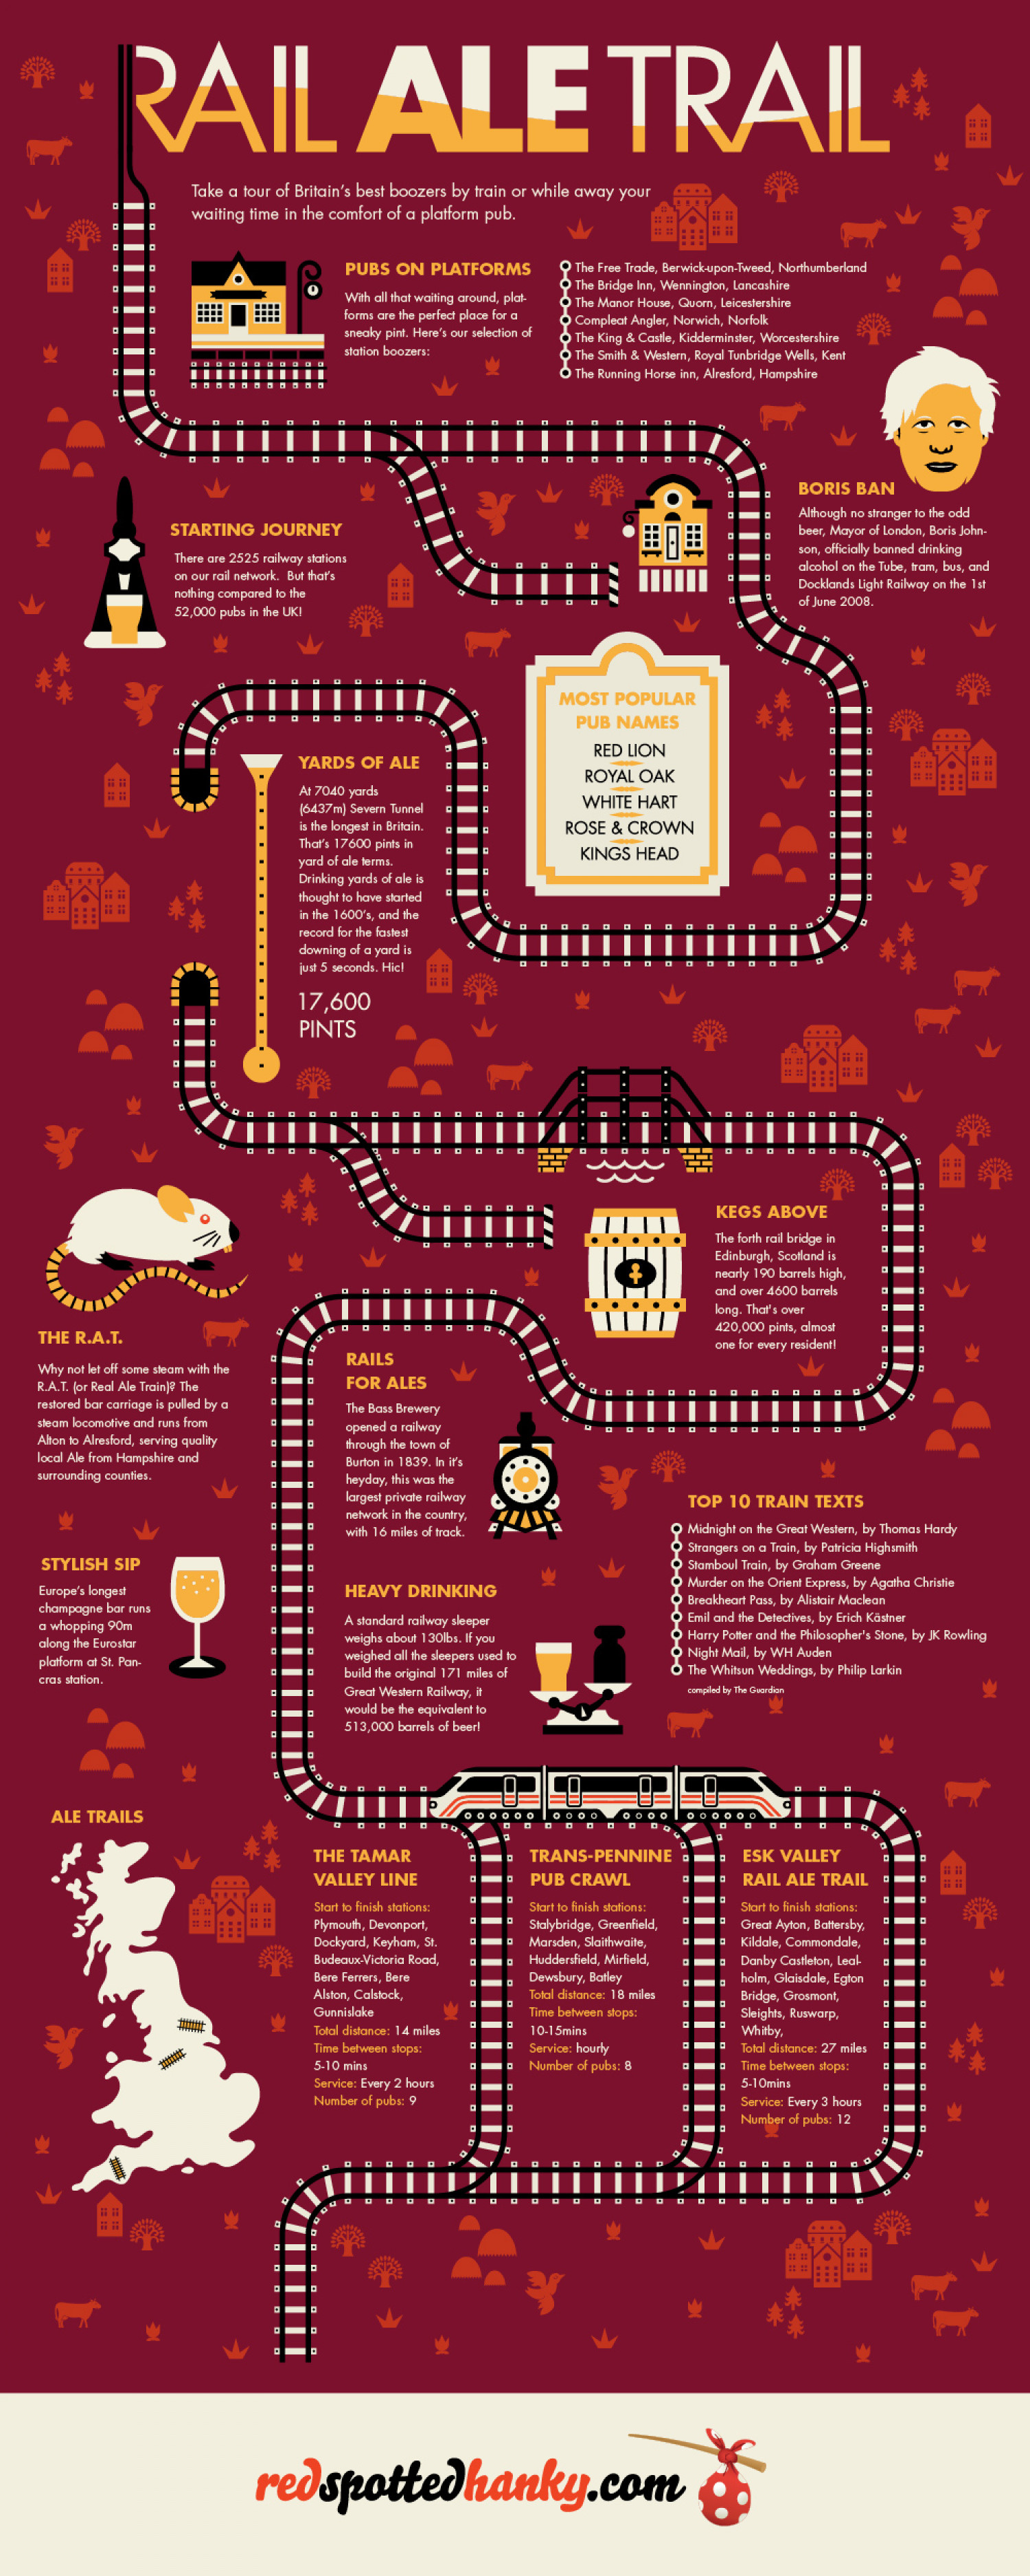 Rail Ale Trail Infographic